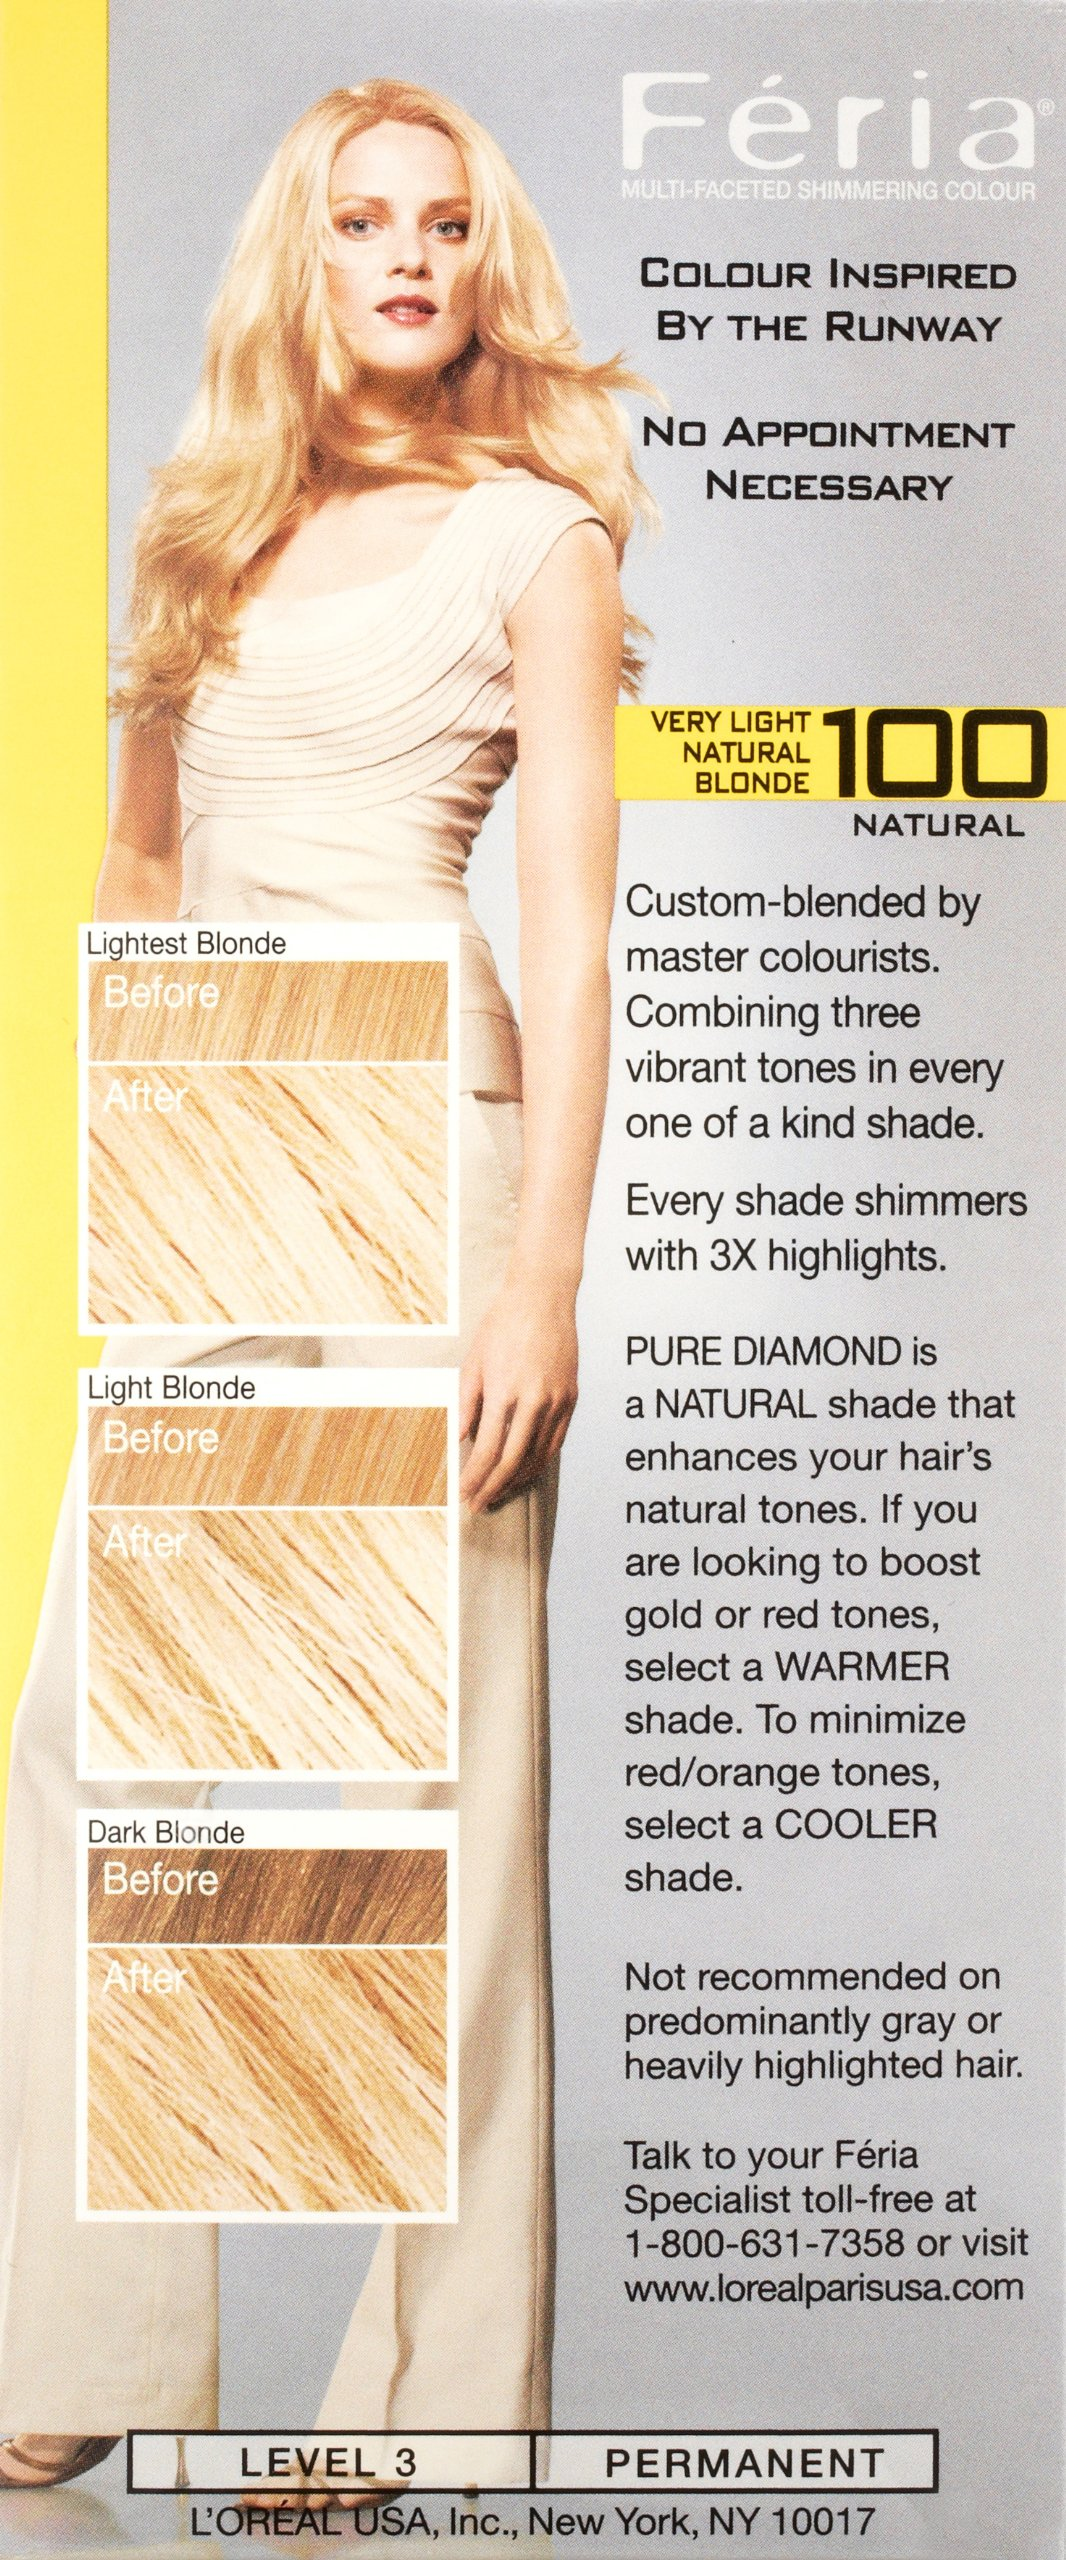 Feria Multi-faceted Shimmering Color 3x Highlights No. 100 ...